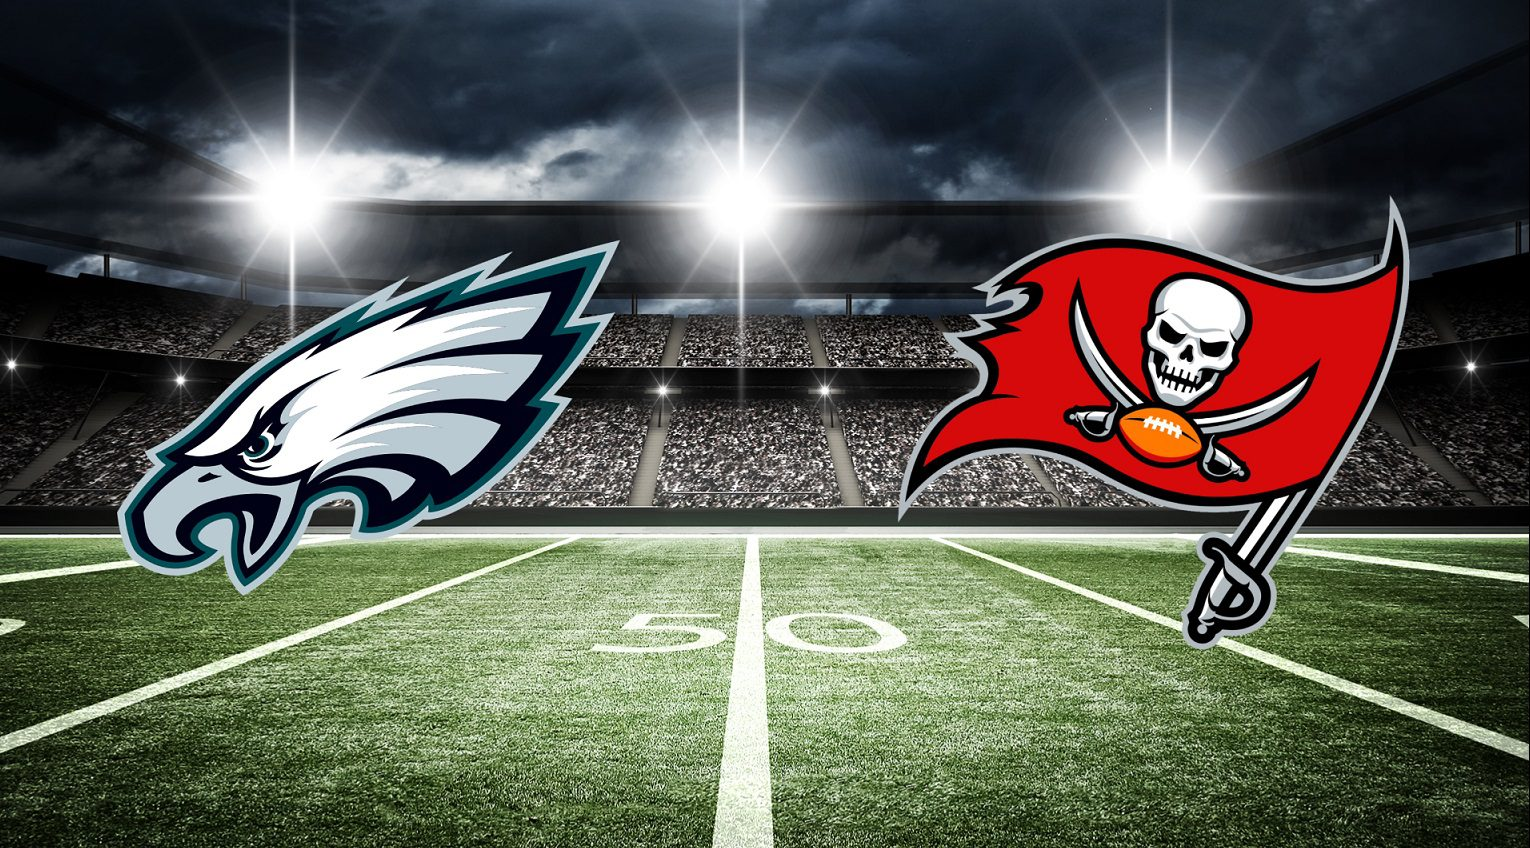 Buccaneers vs Eagles Prediction and Odds: Bucs Predicted to Win